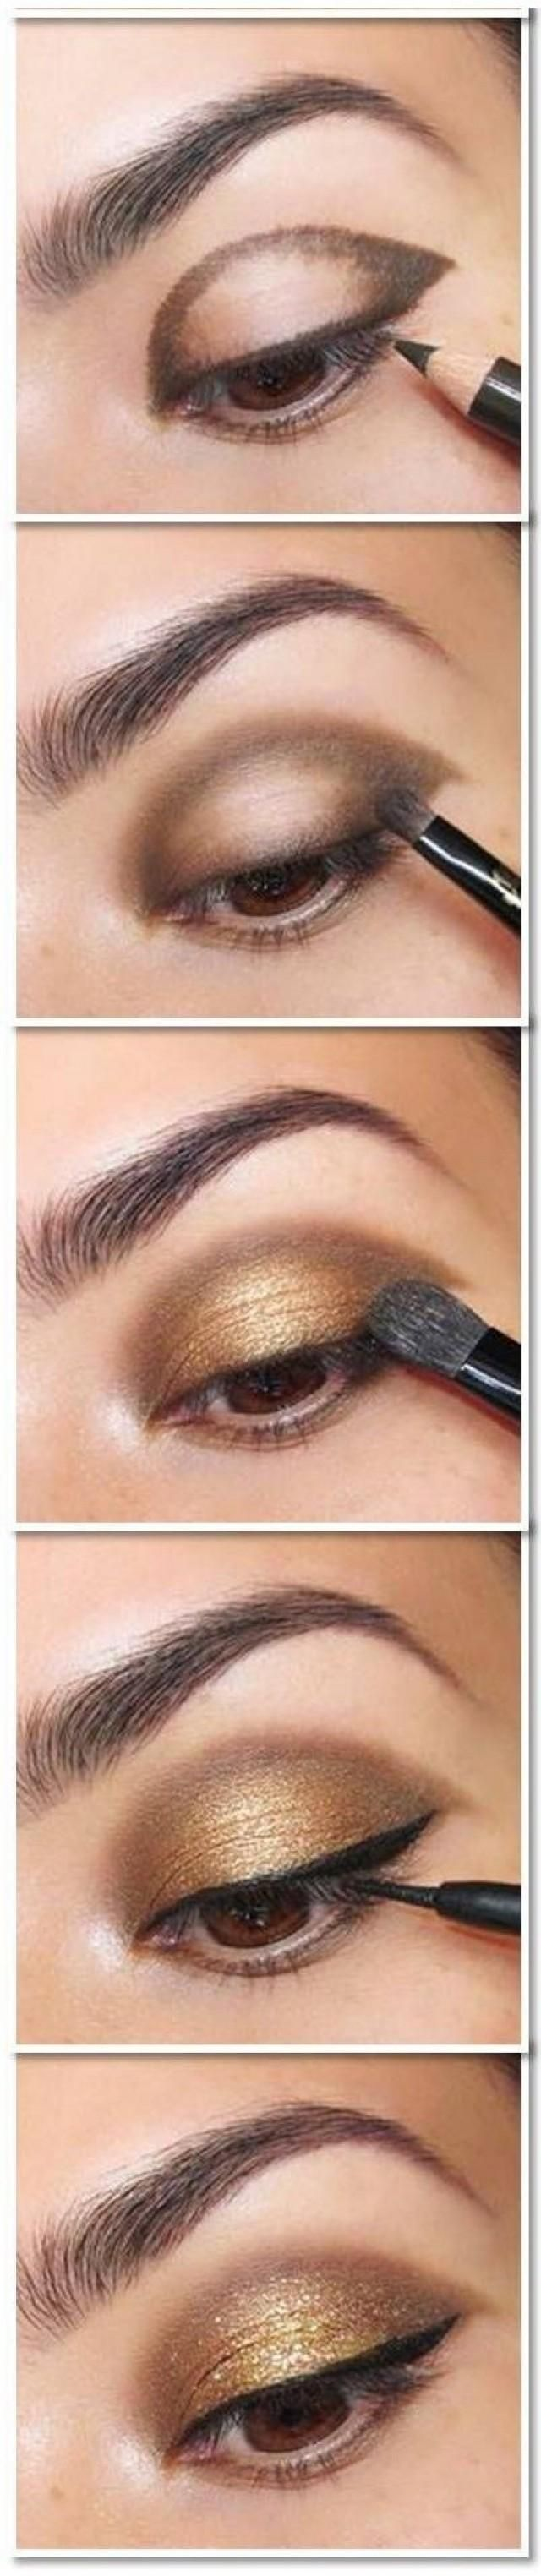 Simple Maquillage Tutoriel d'or des yeux